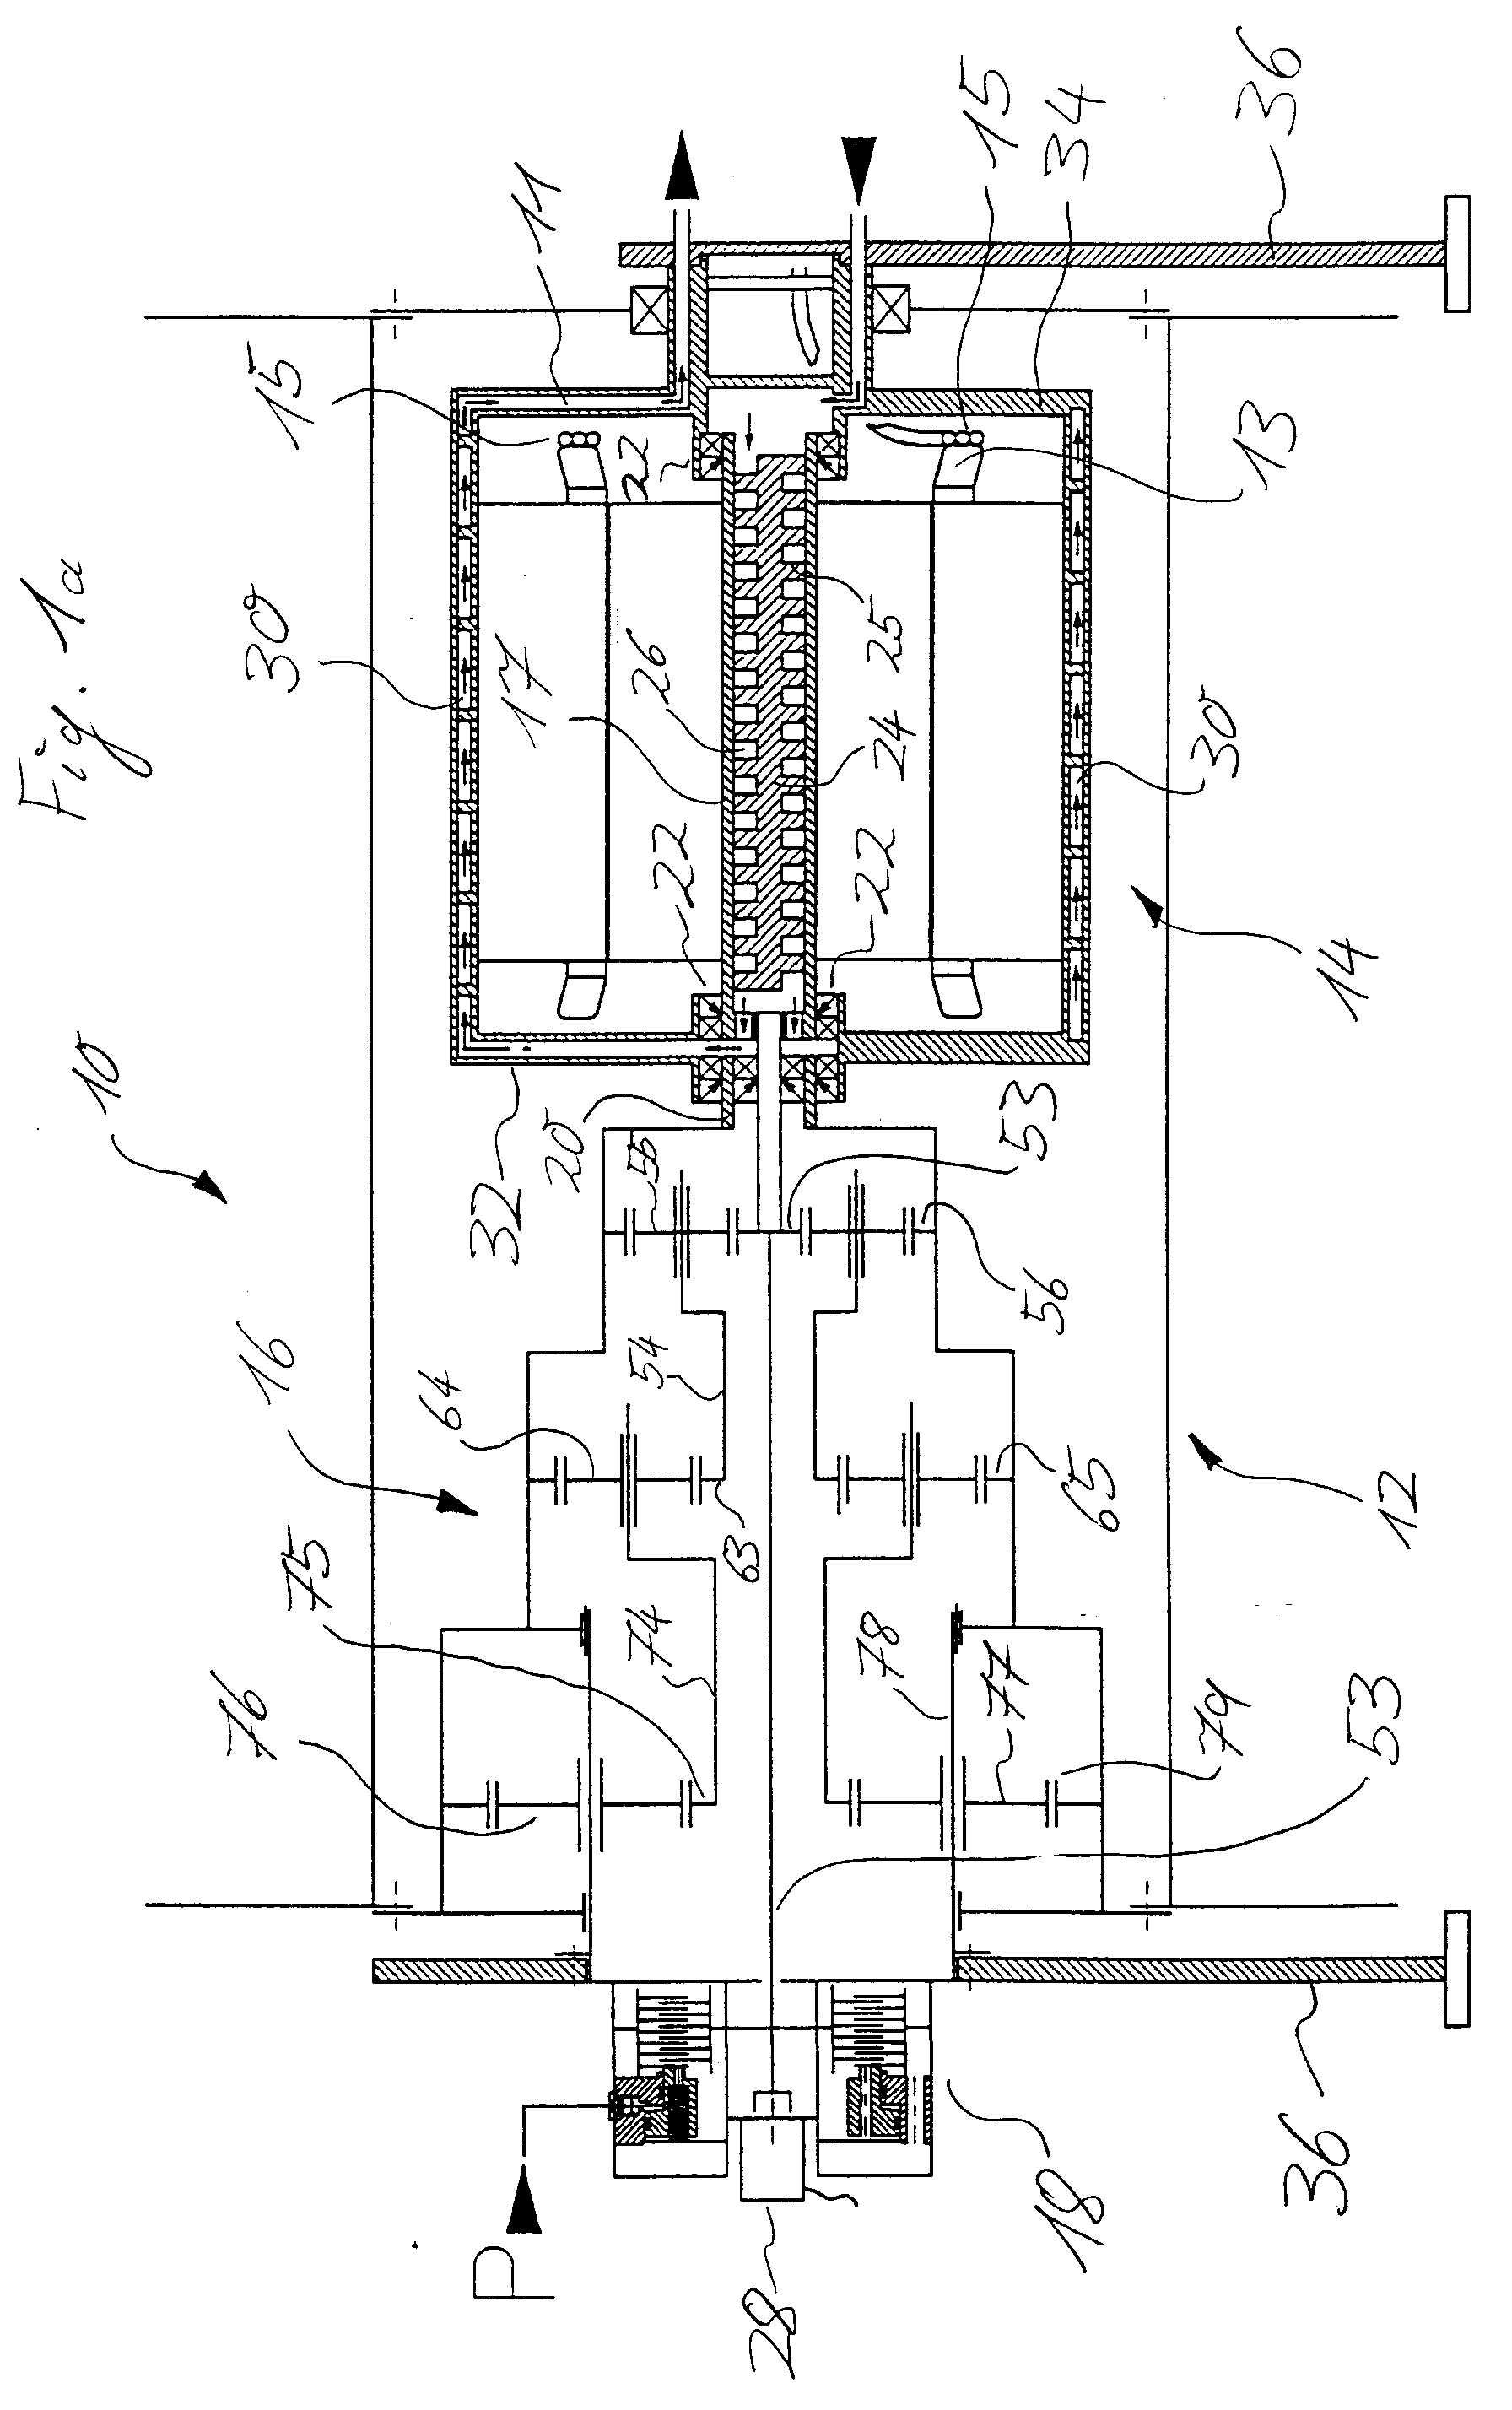 patent ep0919512a2 winch with a liquid cooled electromotor Interroll Drum Motor Wiring Diagram Interroll Drum Motor Wiring Diagram #14 interroll drum motor wiring diagram